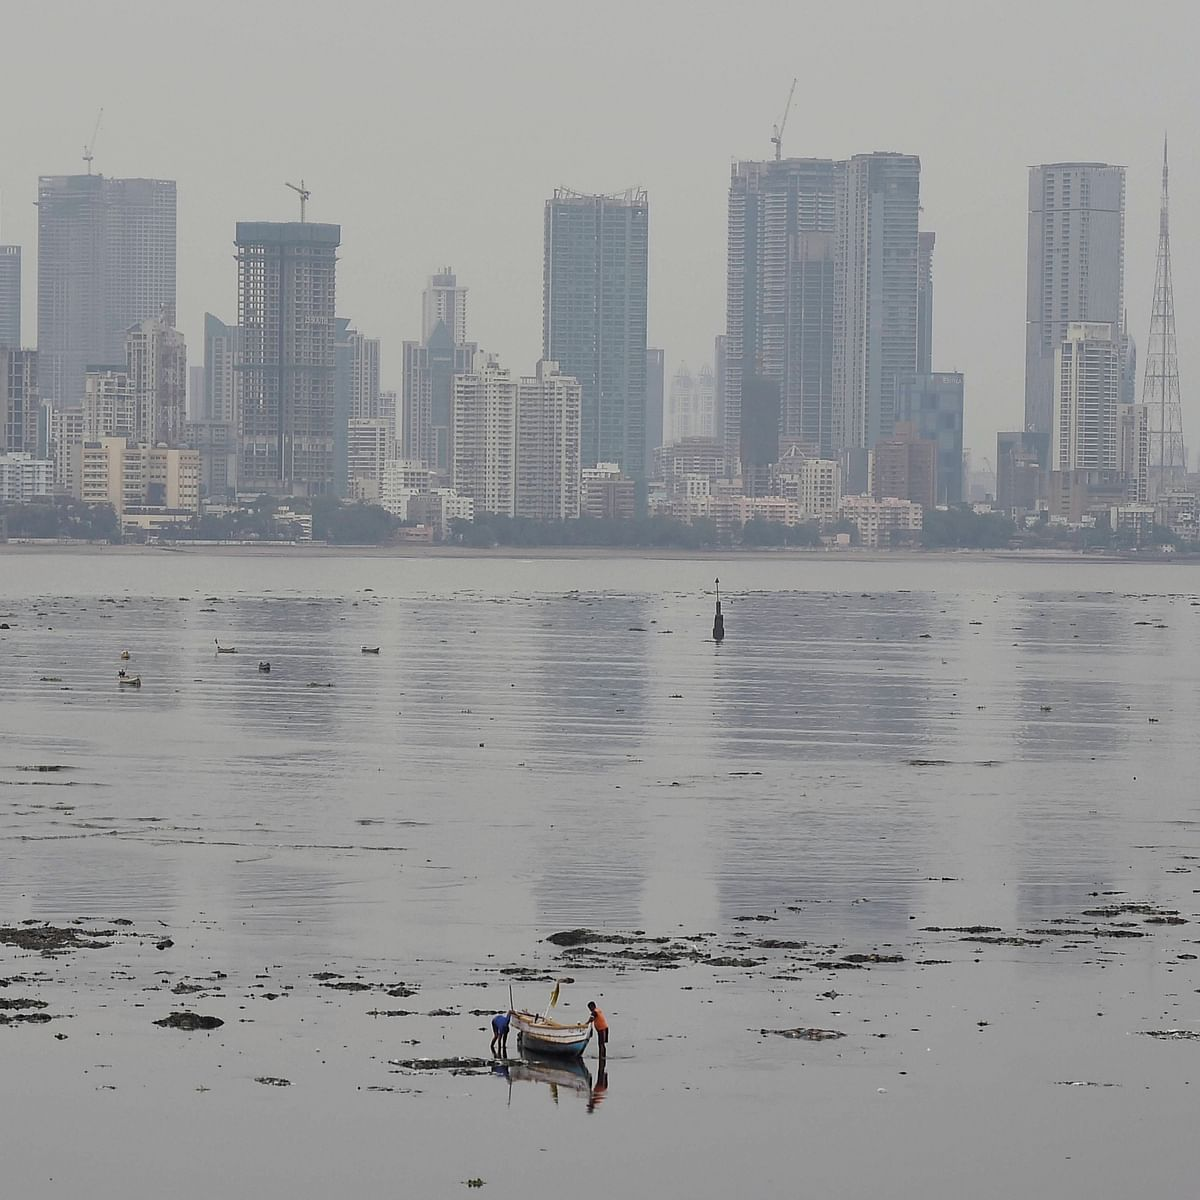 Mumbai weather update: Rains to continue today, predicts IMD; unseasonal rain improves air quality